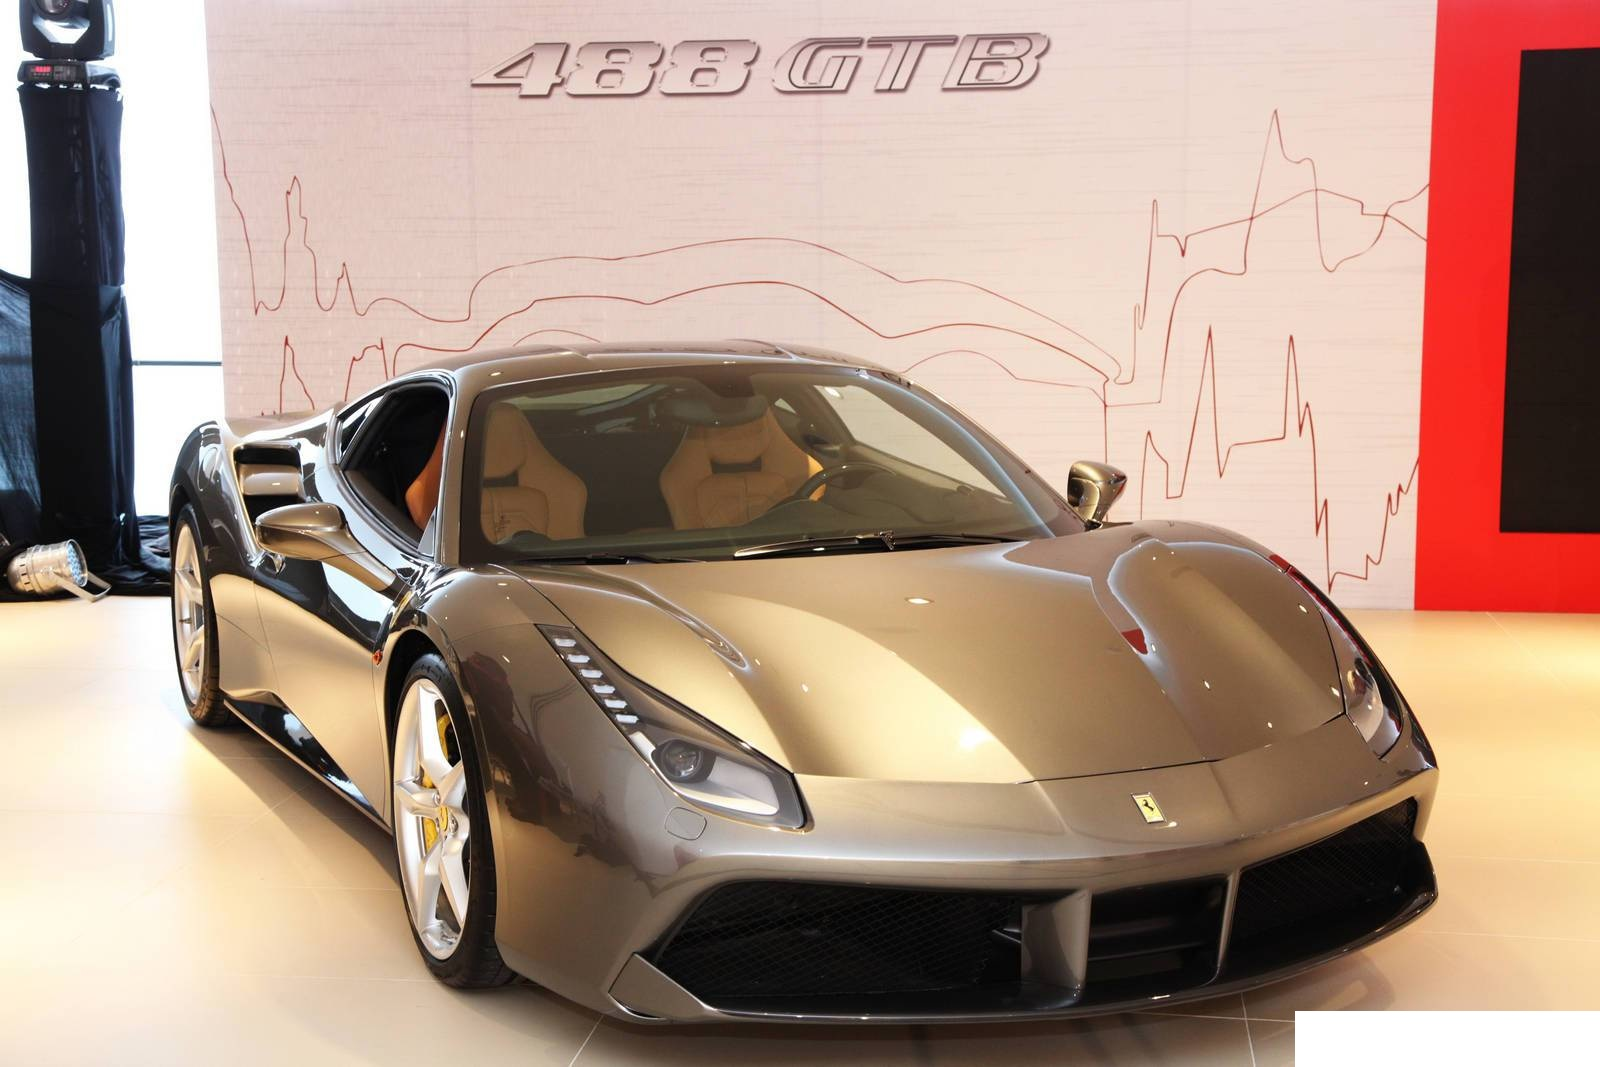 Cars Price Ferrari 488 Gtb Sports Cars Price Specification Features Video